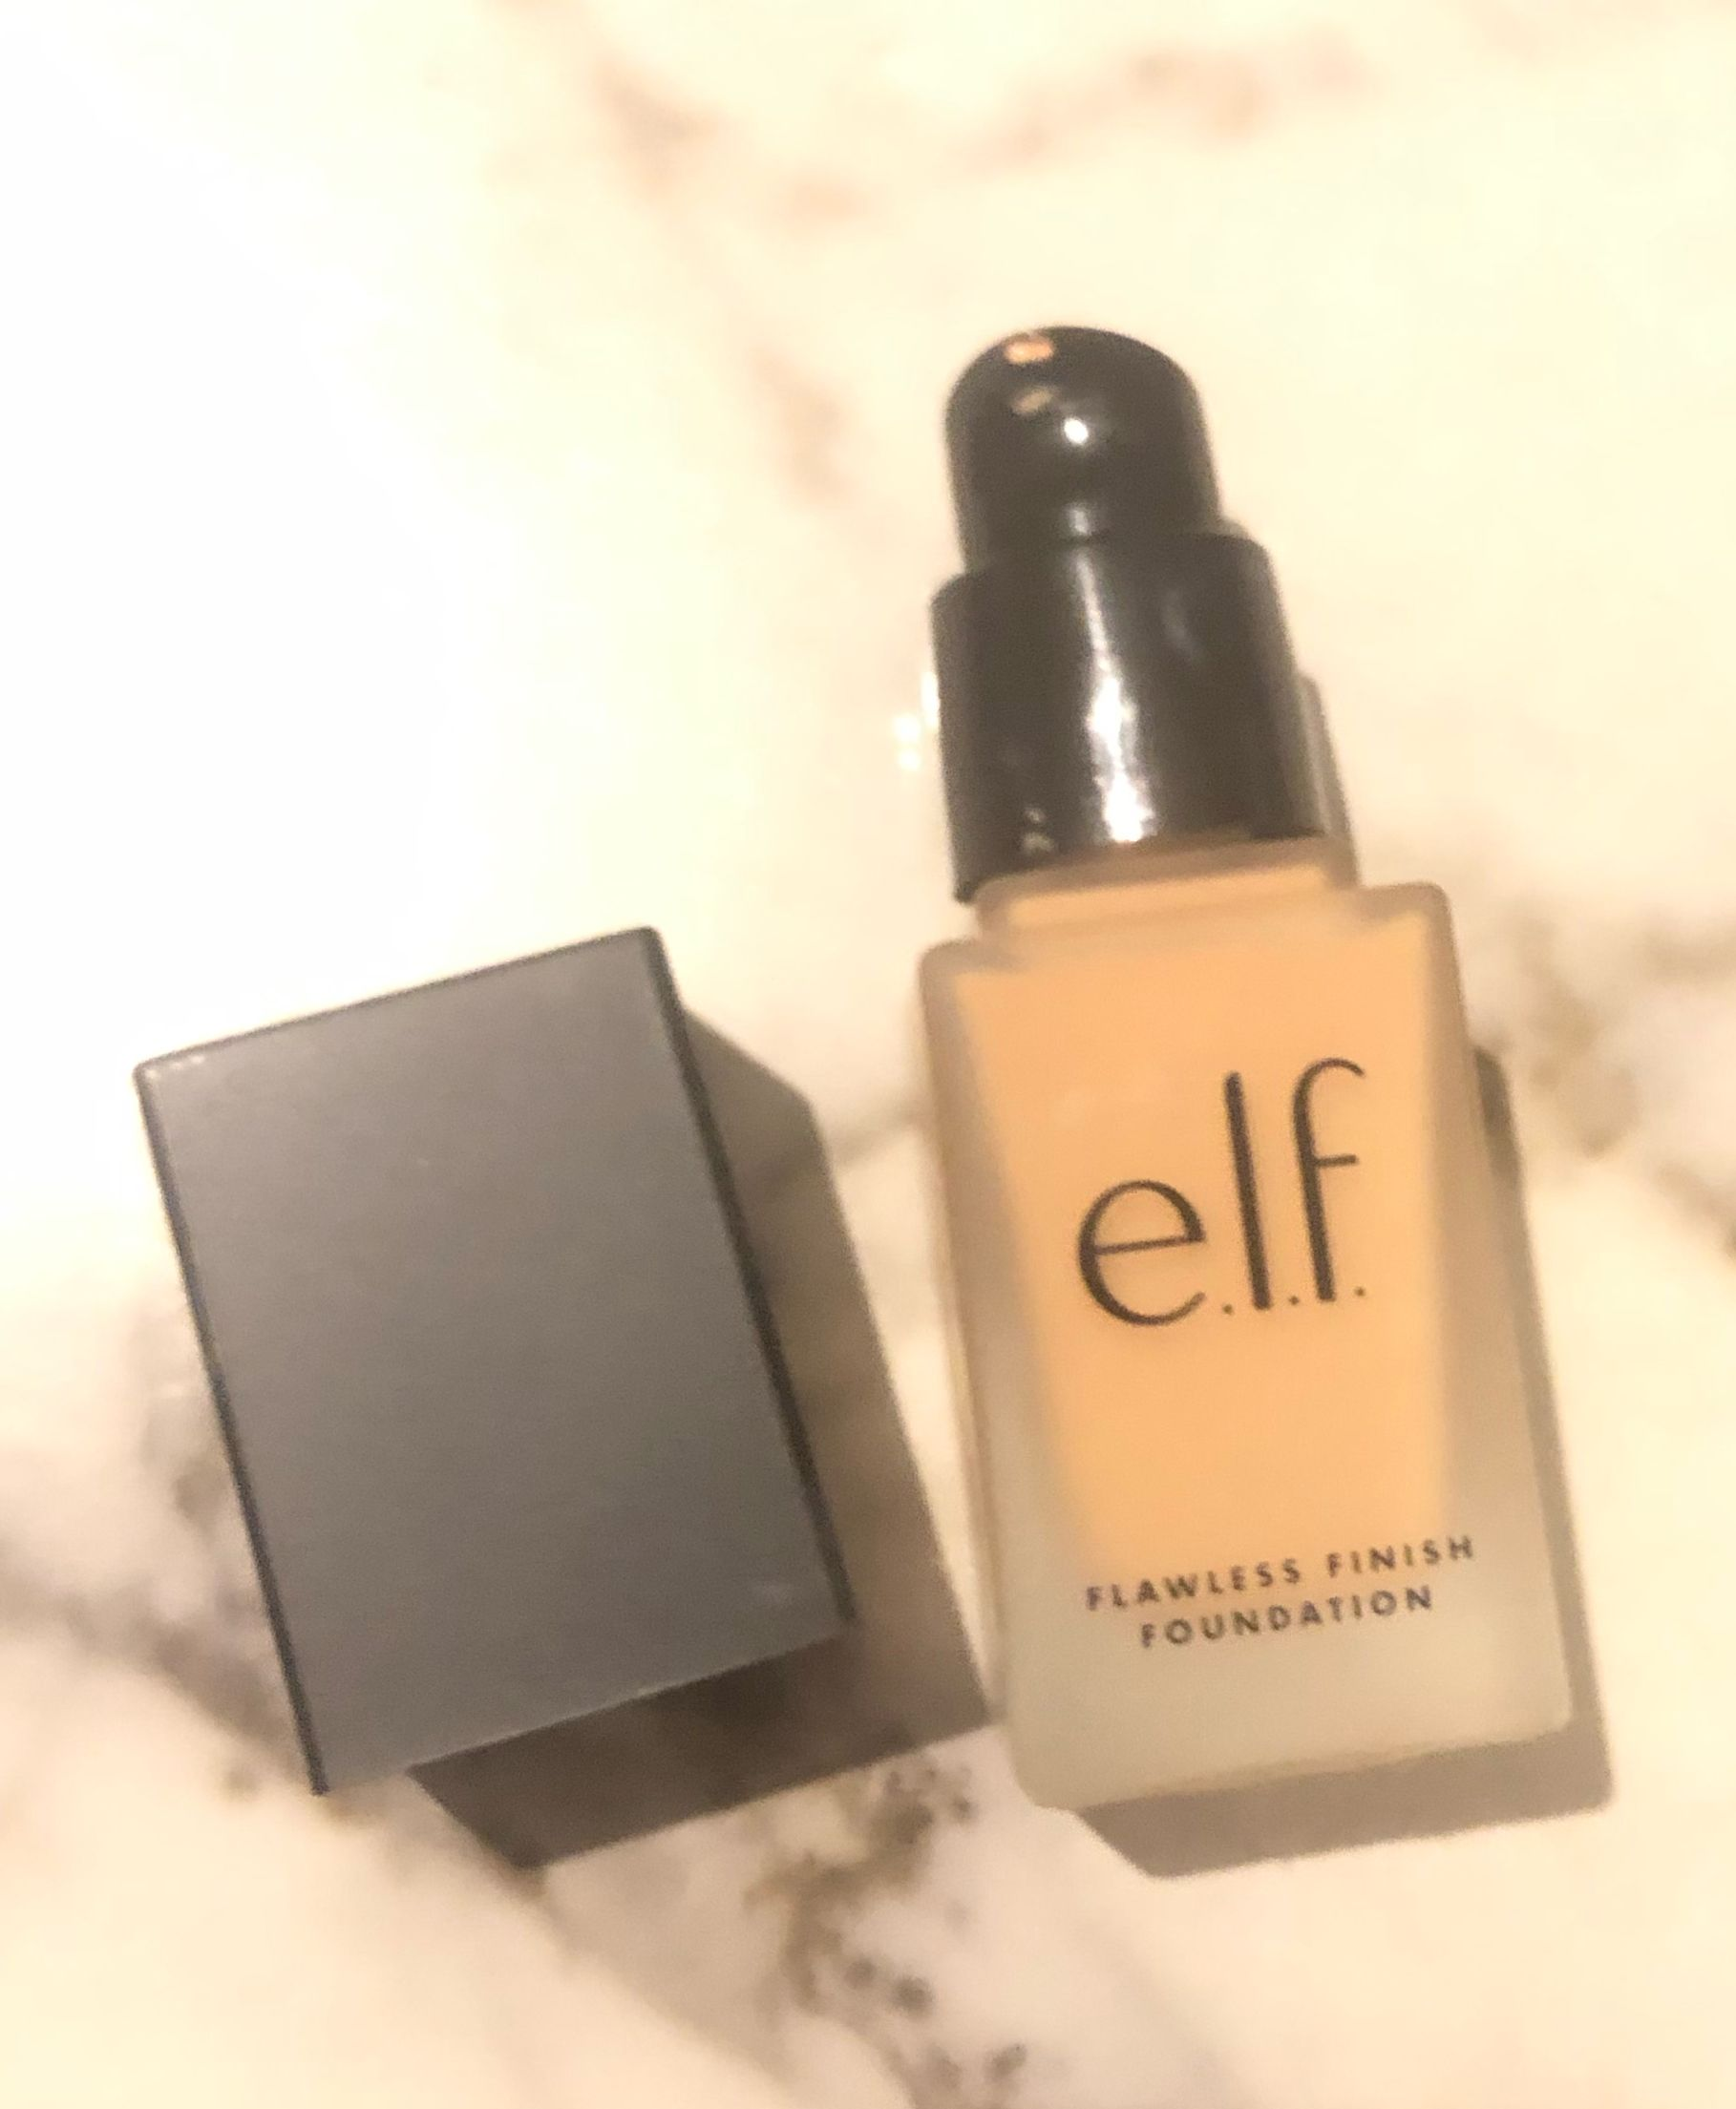 Review E.L.F. Flawless Finish Foundation Beauty sponge